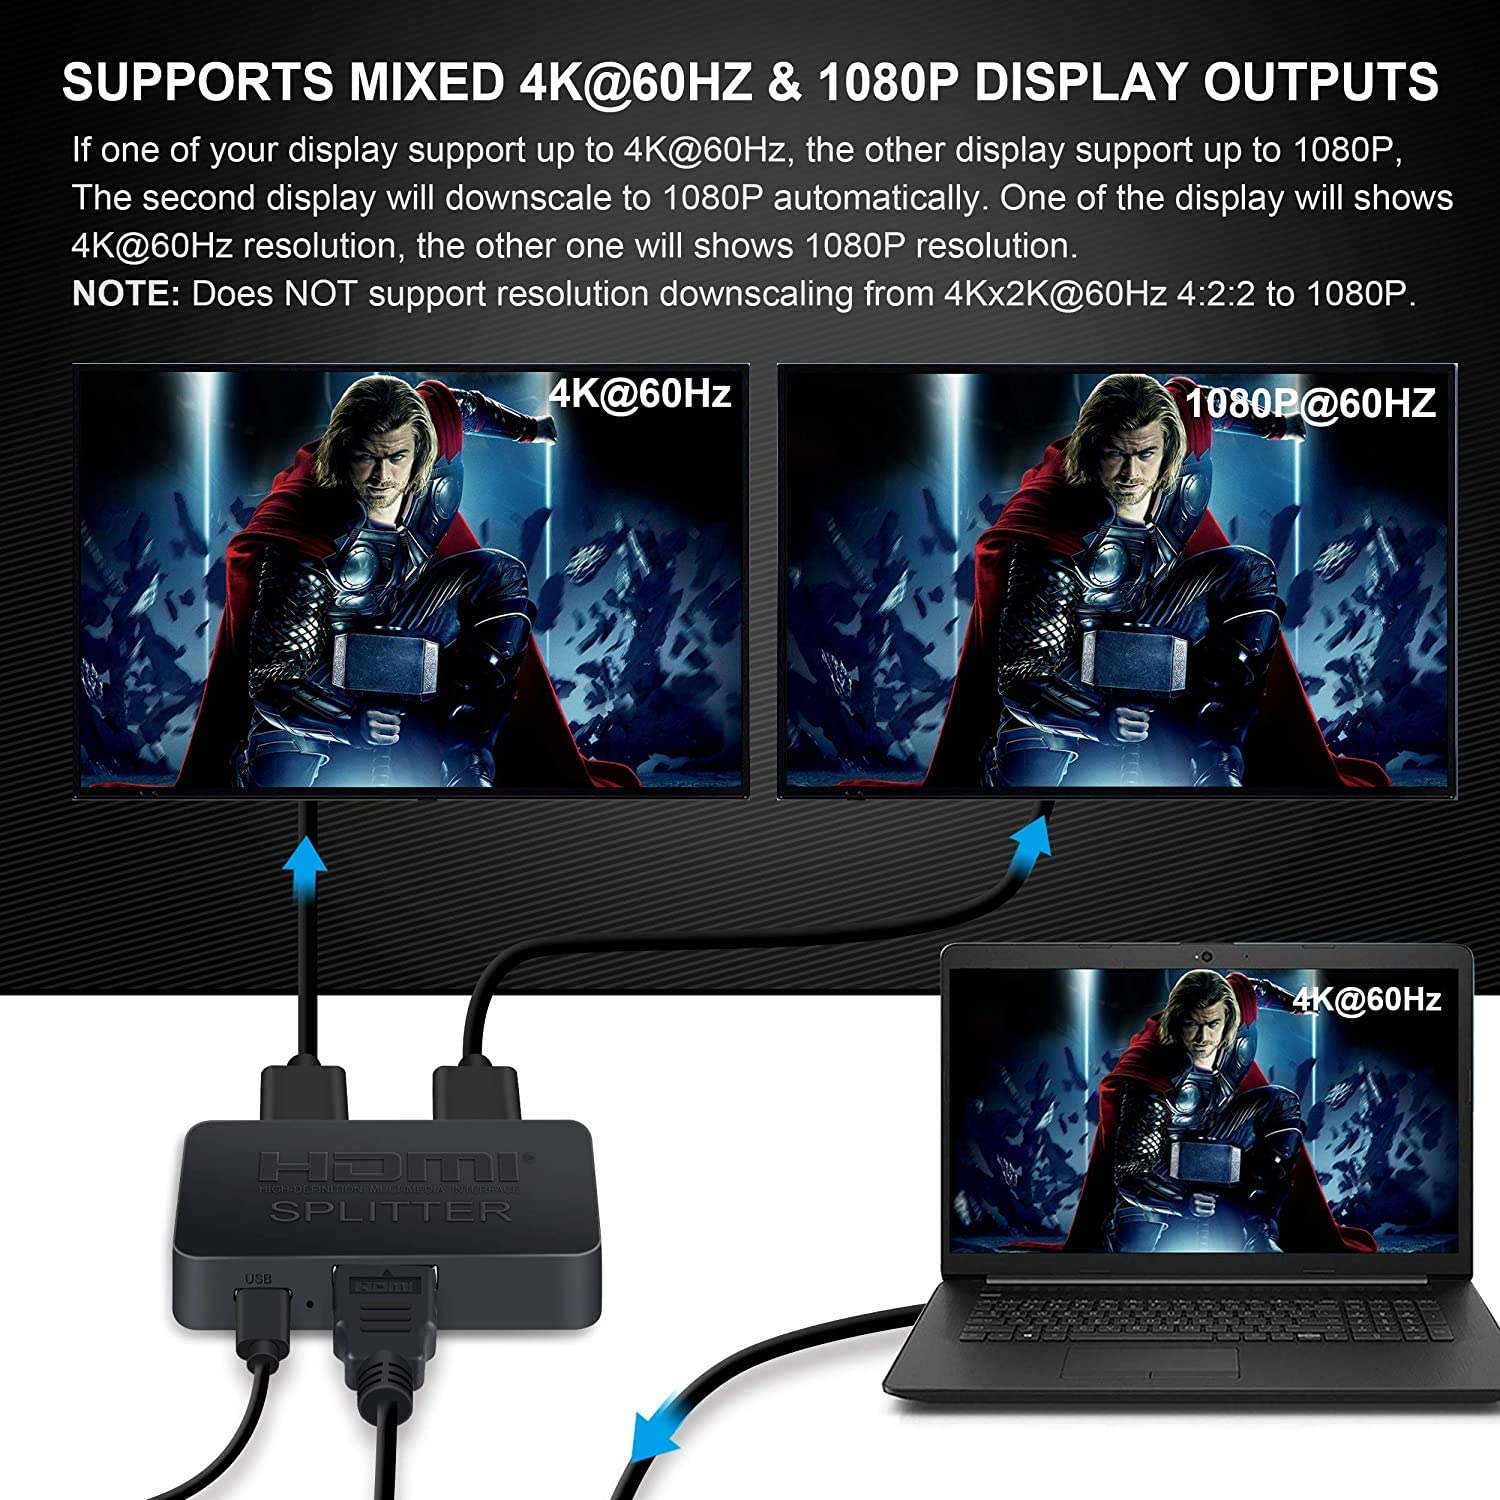 Mirror Only, Not Extend 4K HDMI Splitter for Dual Monitors, 1 x 2 HDMI Splitter 1 to 2 Amplifier for Full HD 1080P 3D Support High Speed HDMI Cable HDMI Splitter 1 in 2 Out